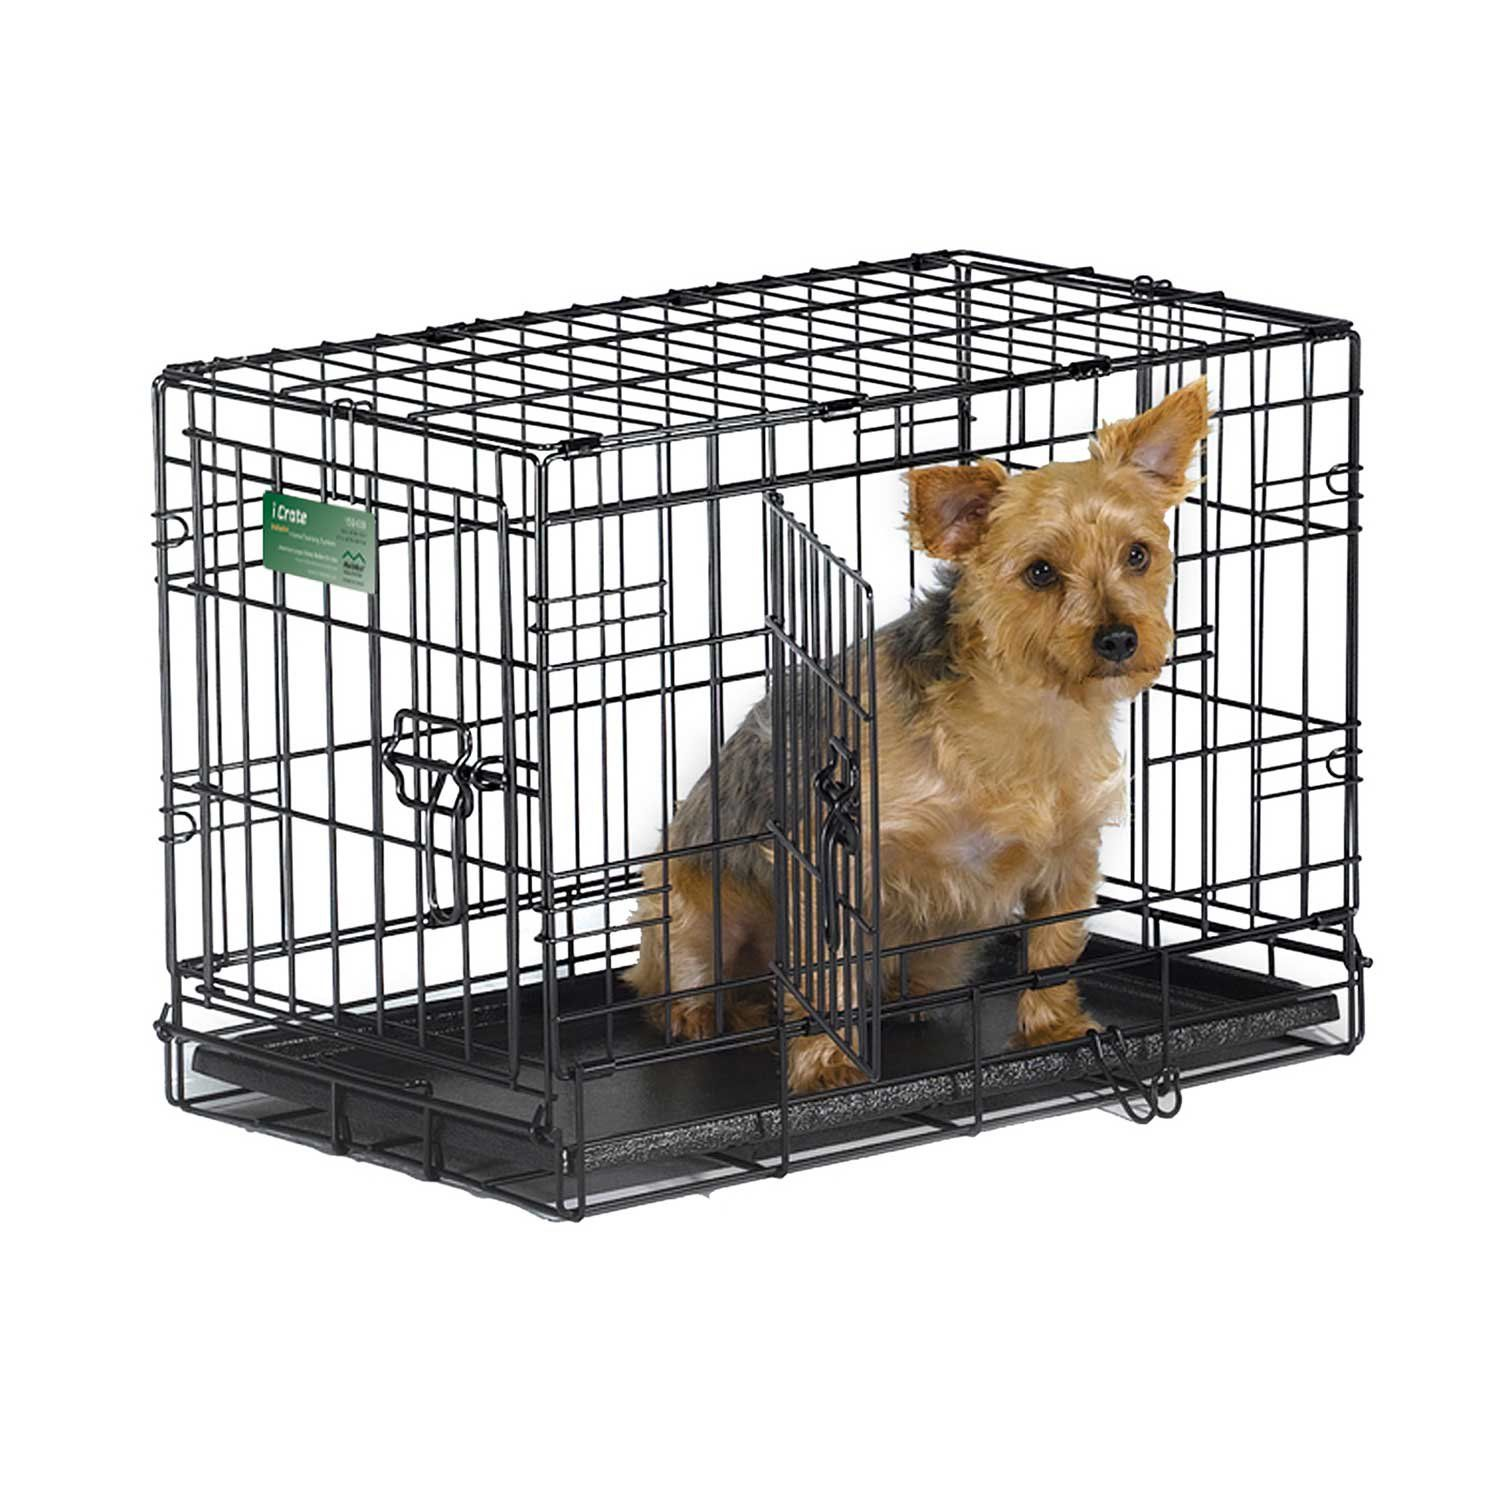 Midwest Icrate Double Door Folding Dog Crates The Dog Crate Comes To You Equipped With Every Feature You Can Think Of Dog Playpen Wire Dog Crates Dog Crate